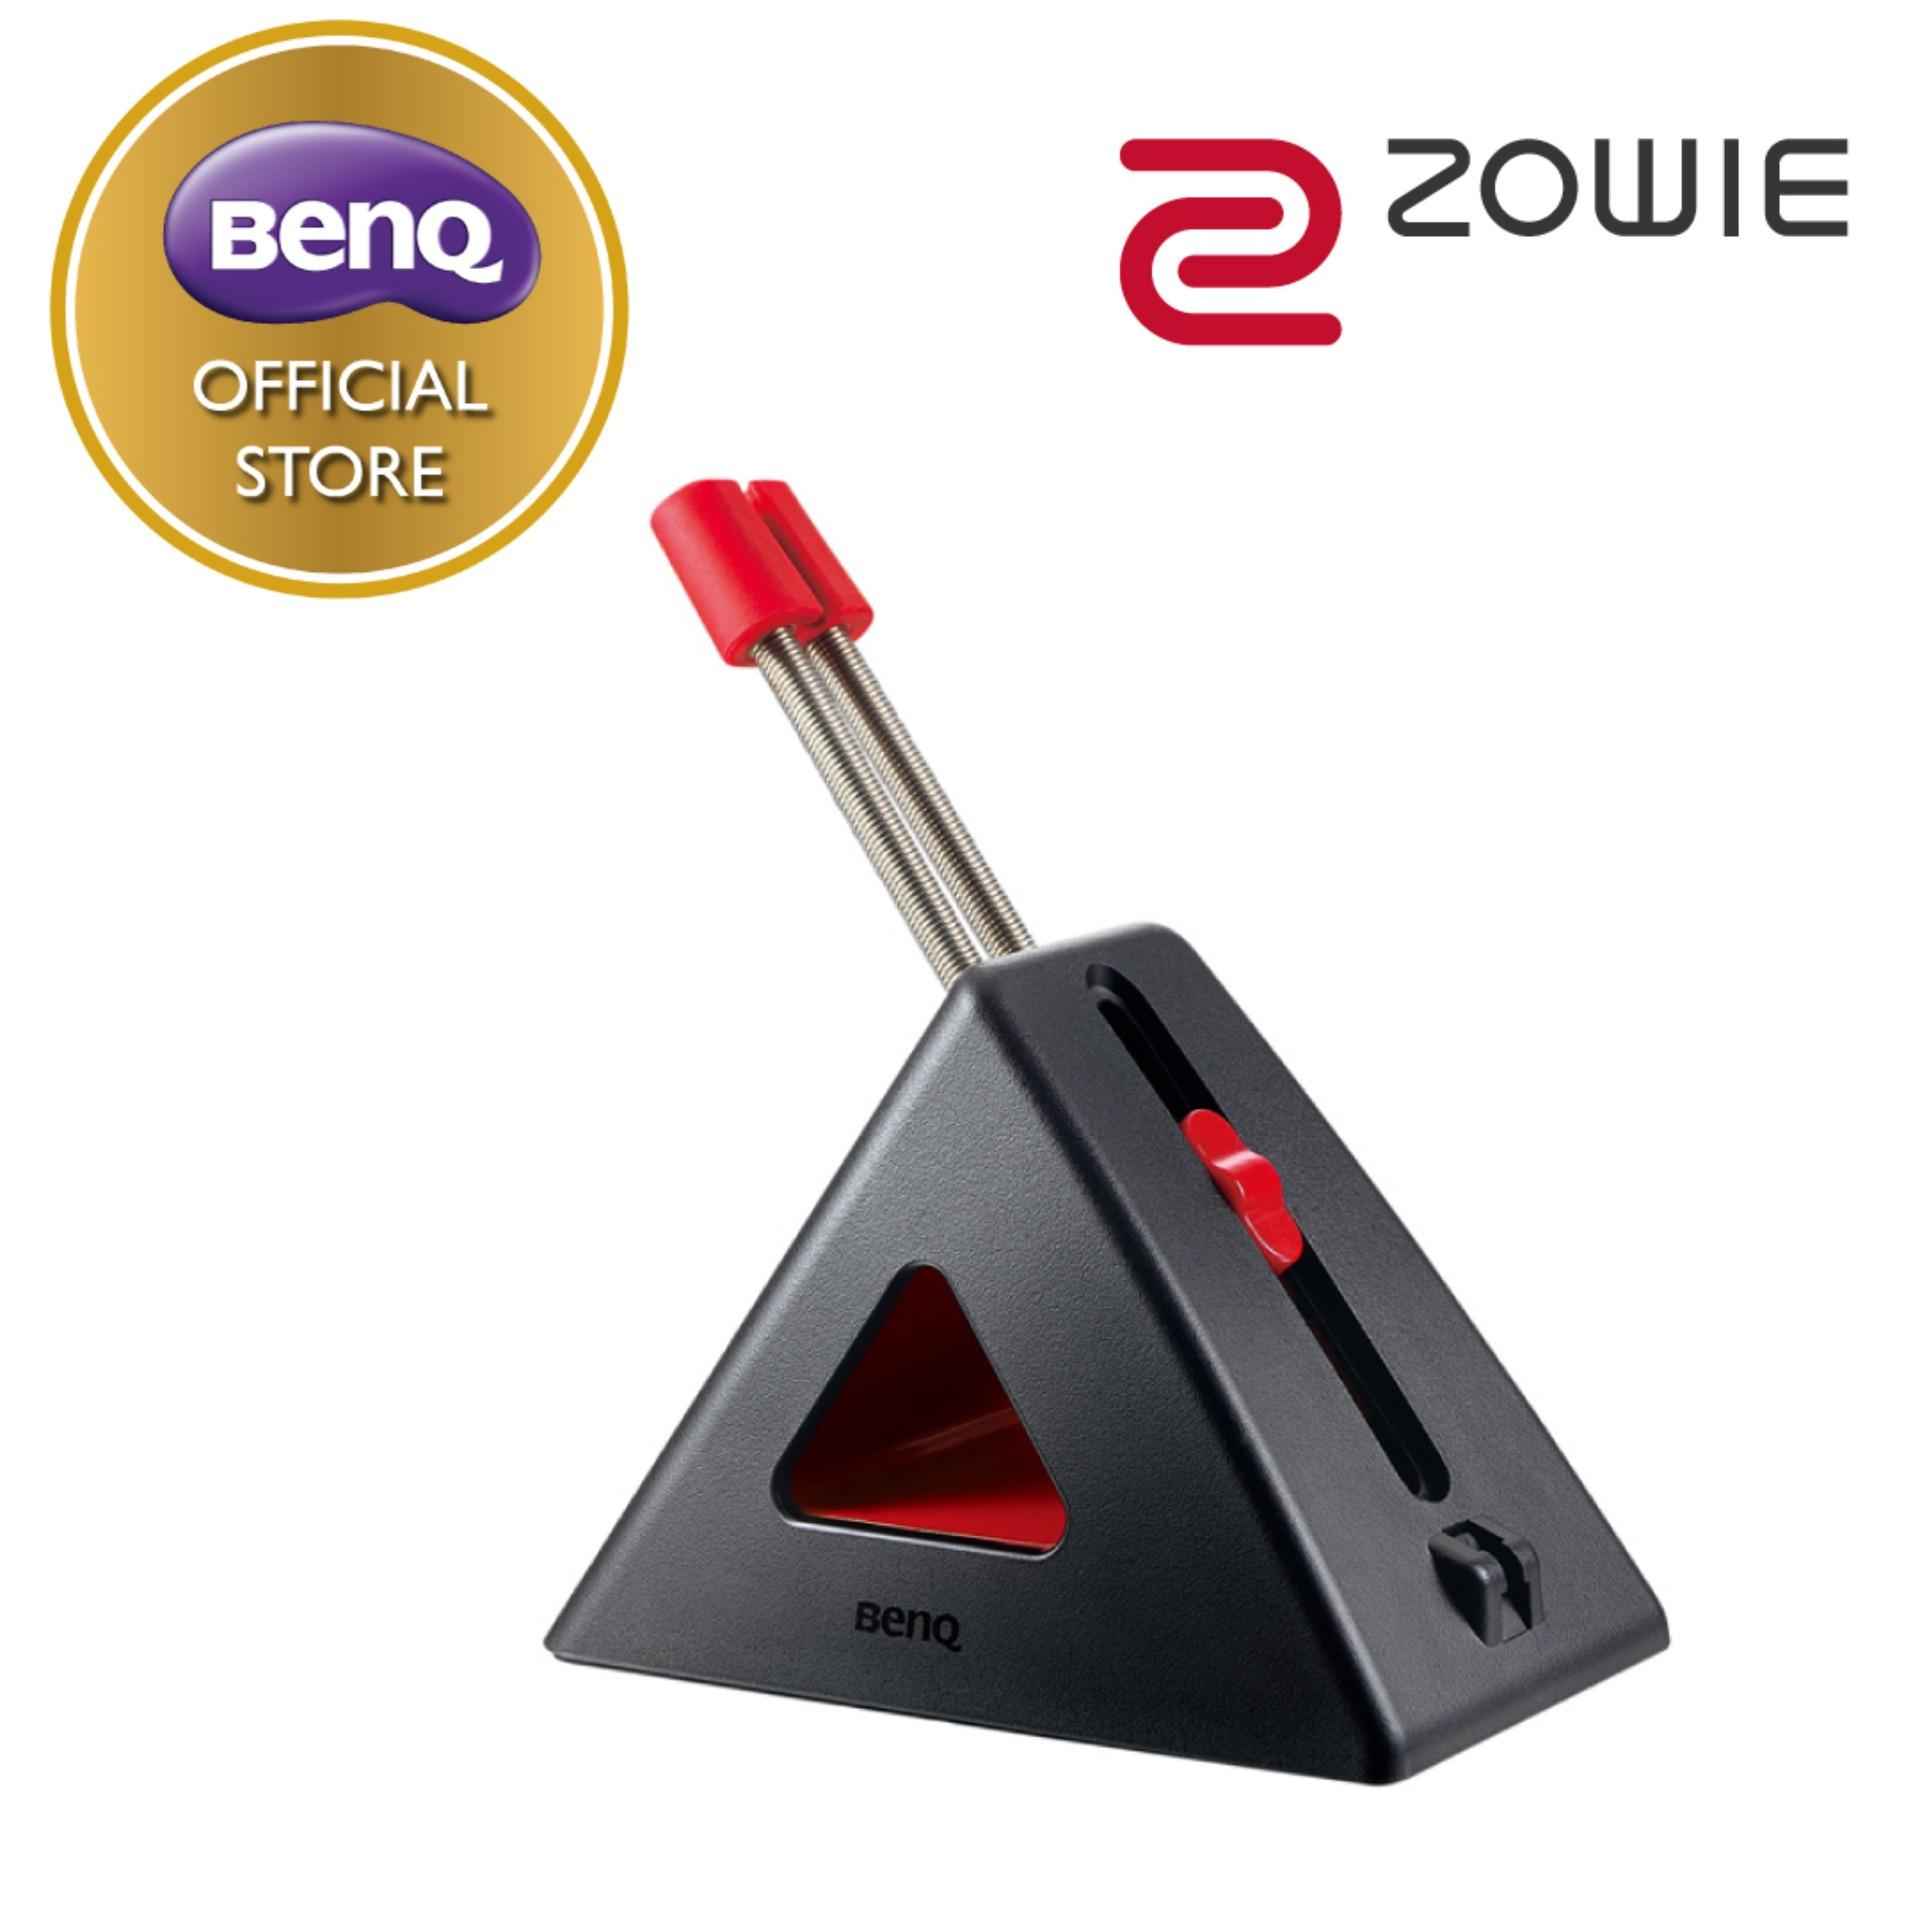 BenQ ZOWIE Camade eSports Gears Gaming Cable Management Device